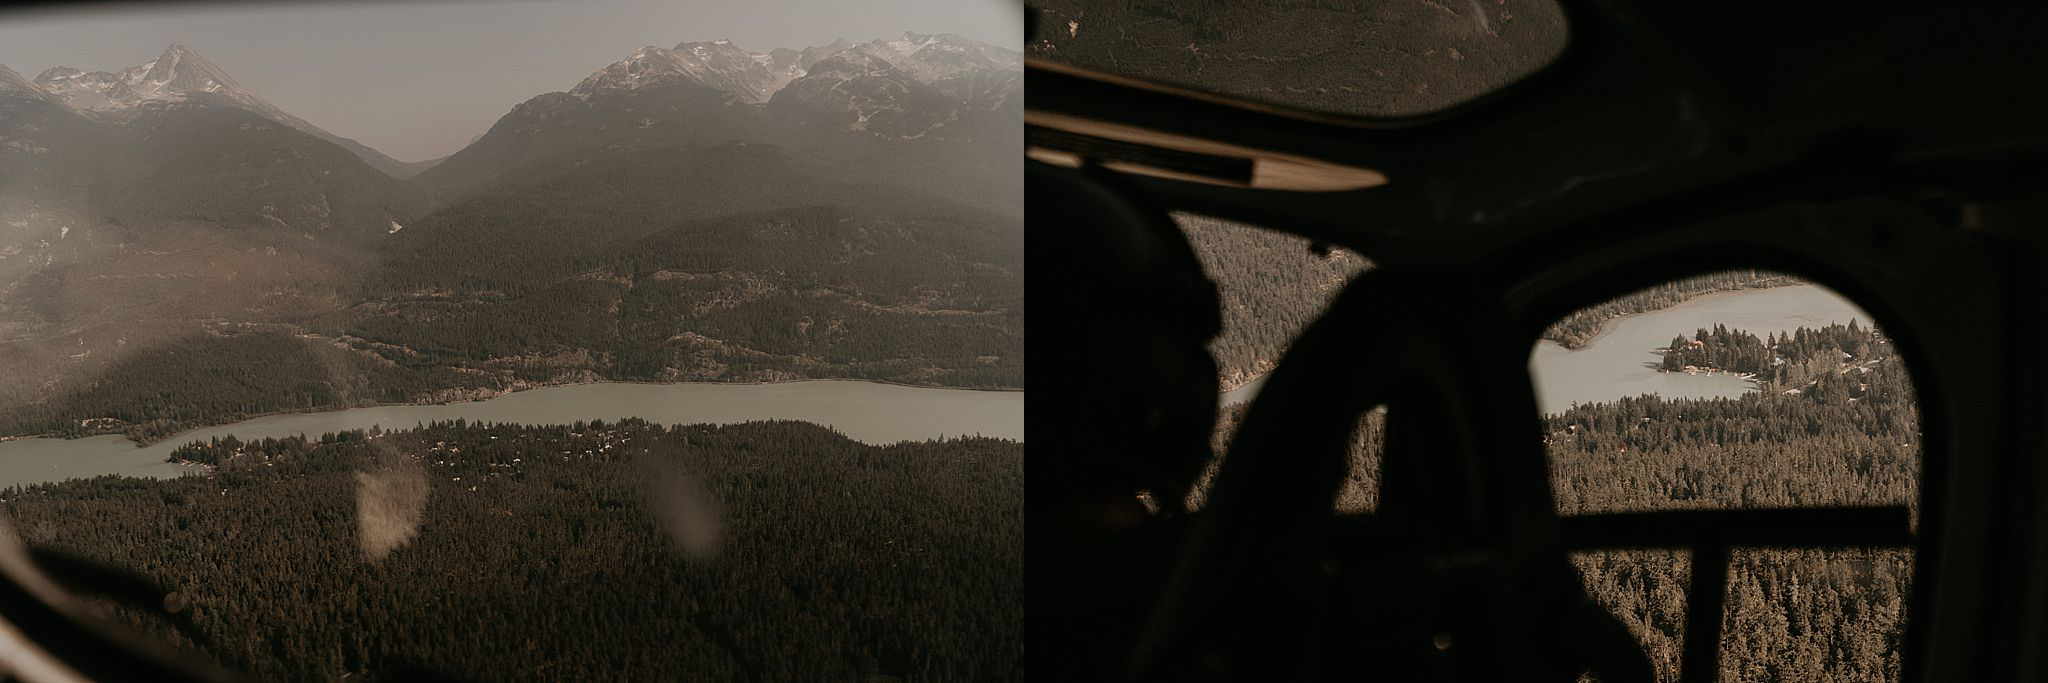 whistler-mountain-helicopter-elopement-wedding_0082.jpg